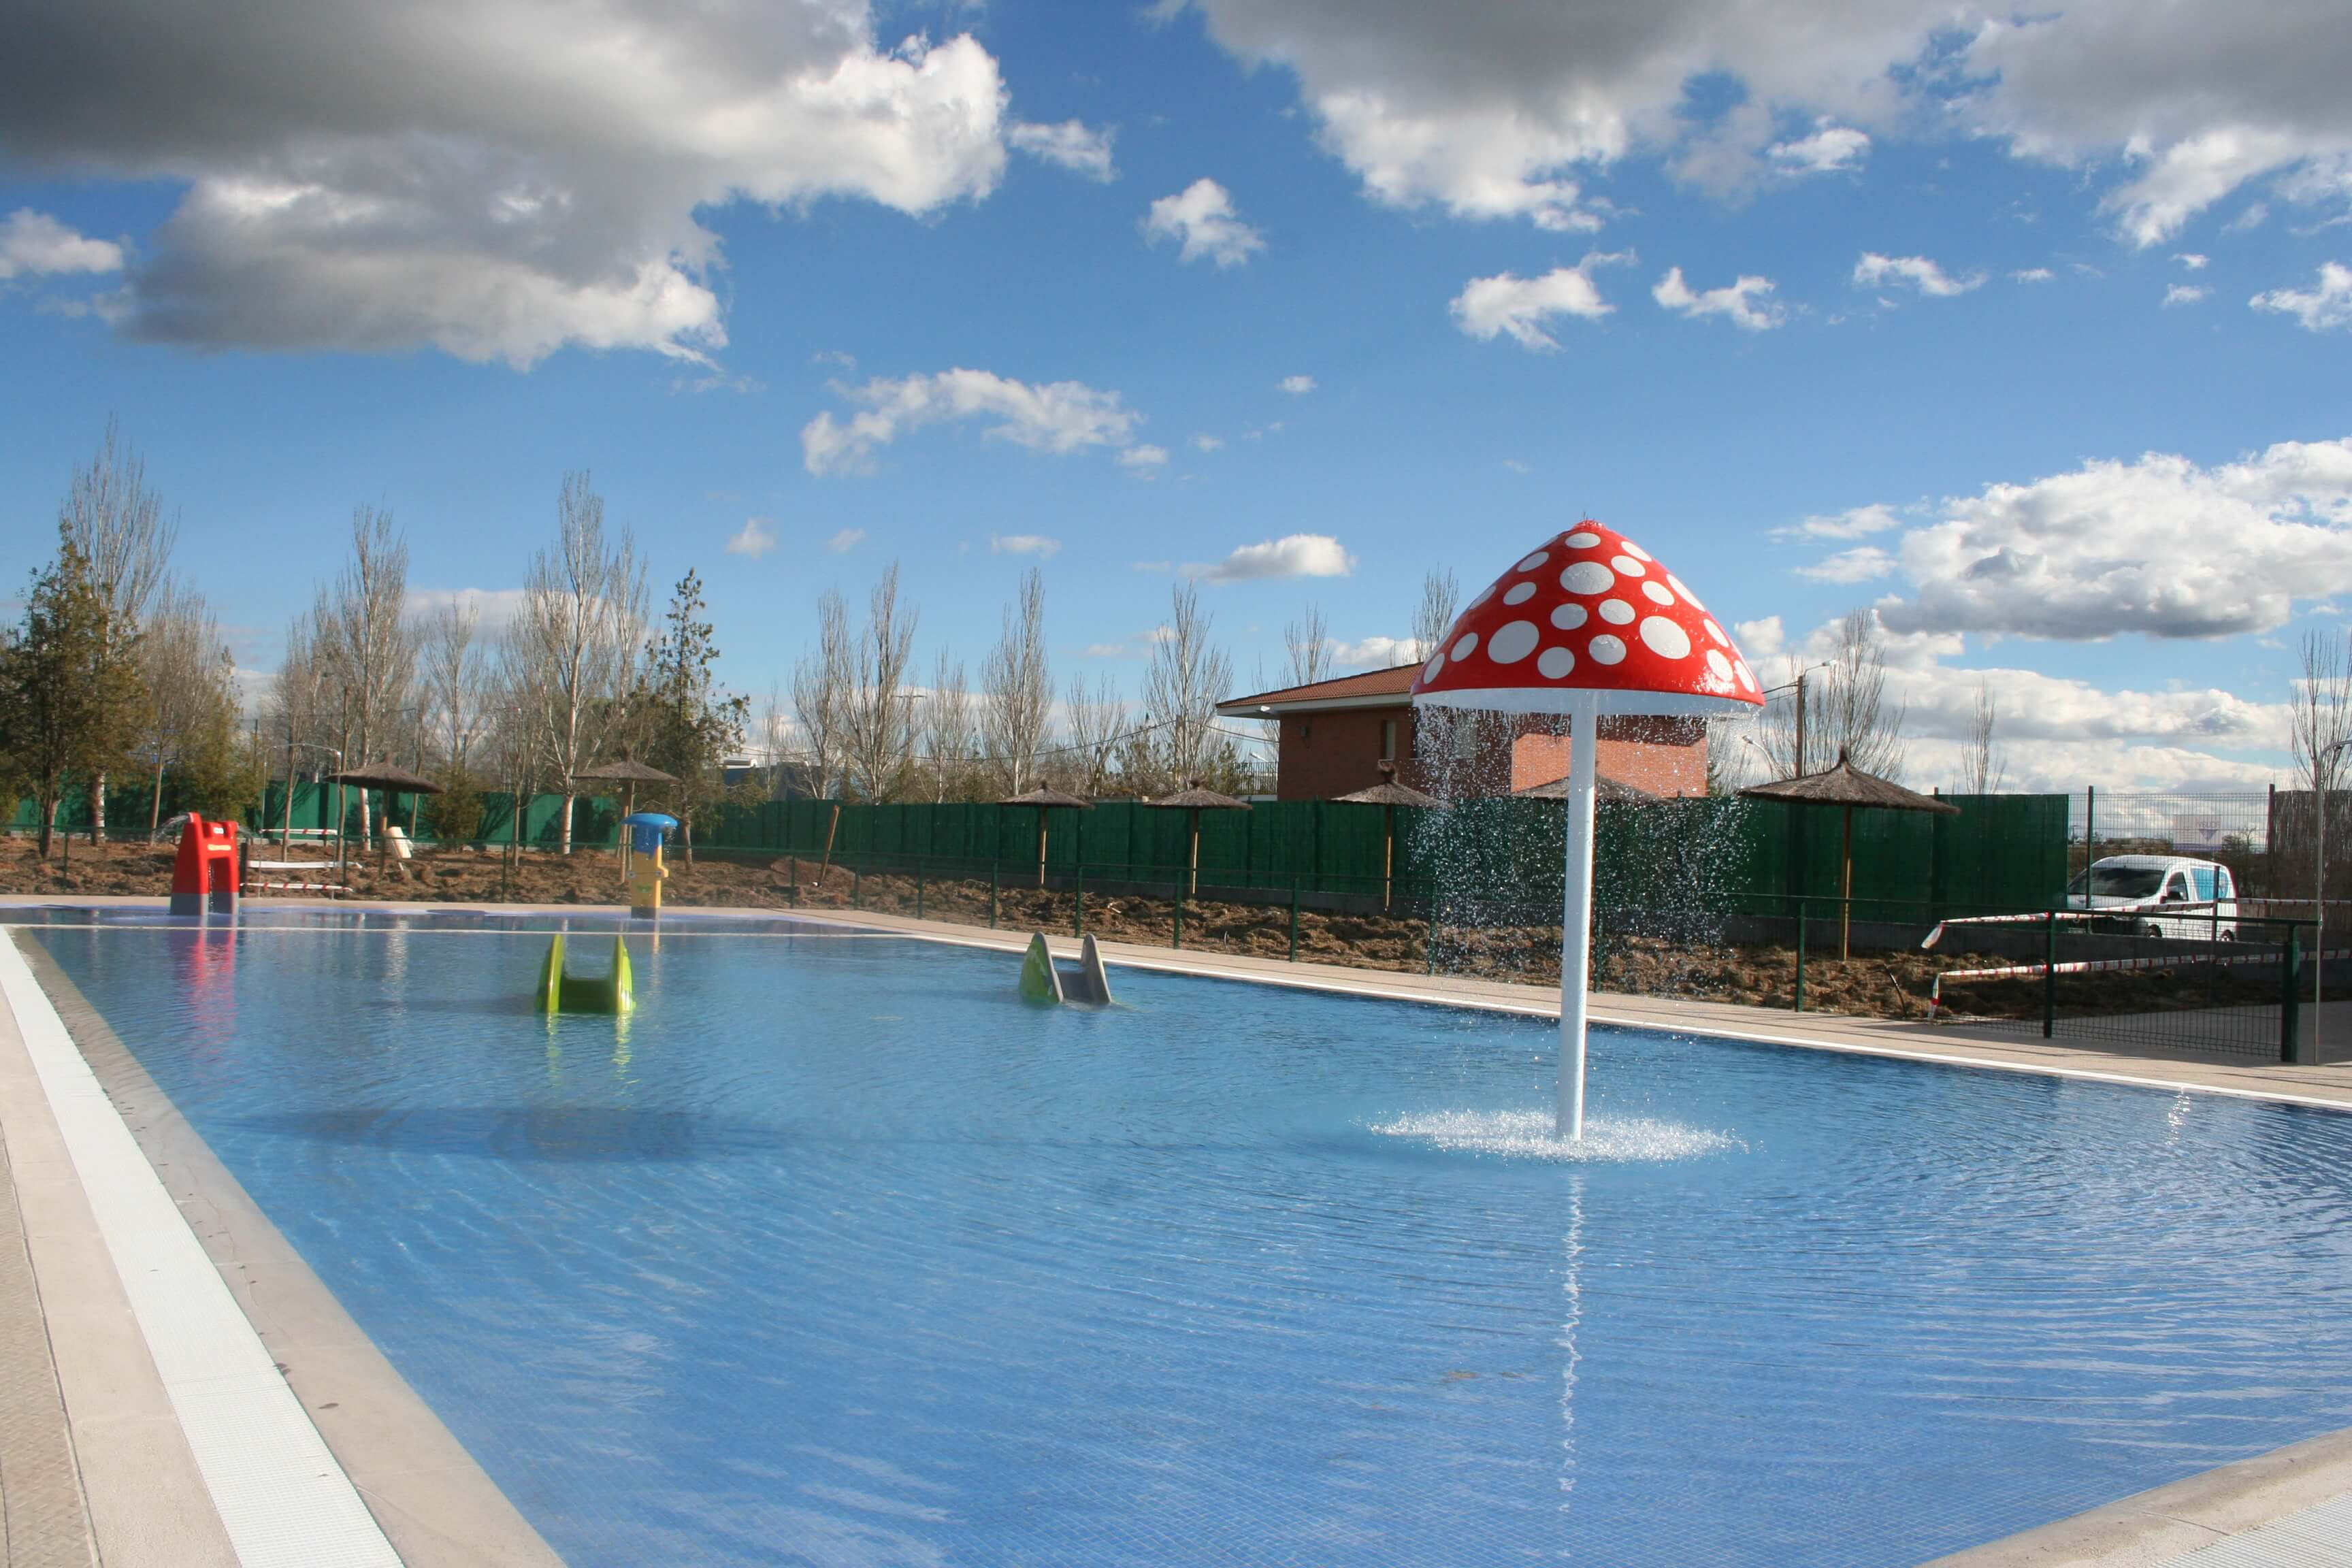 Contractpool piscinas spas e instalaciones deportivas for Piscina publica madrid